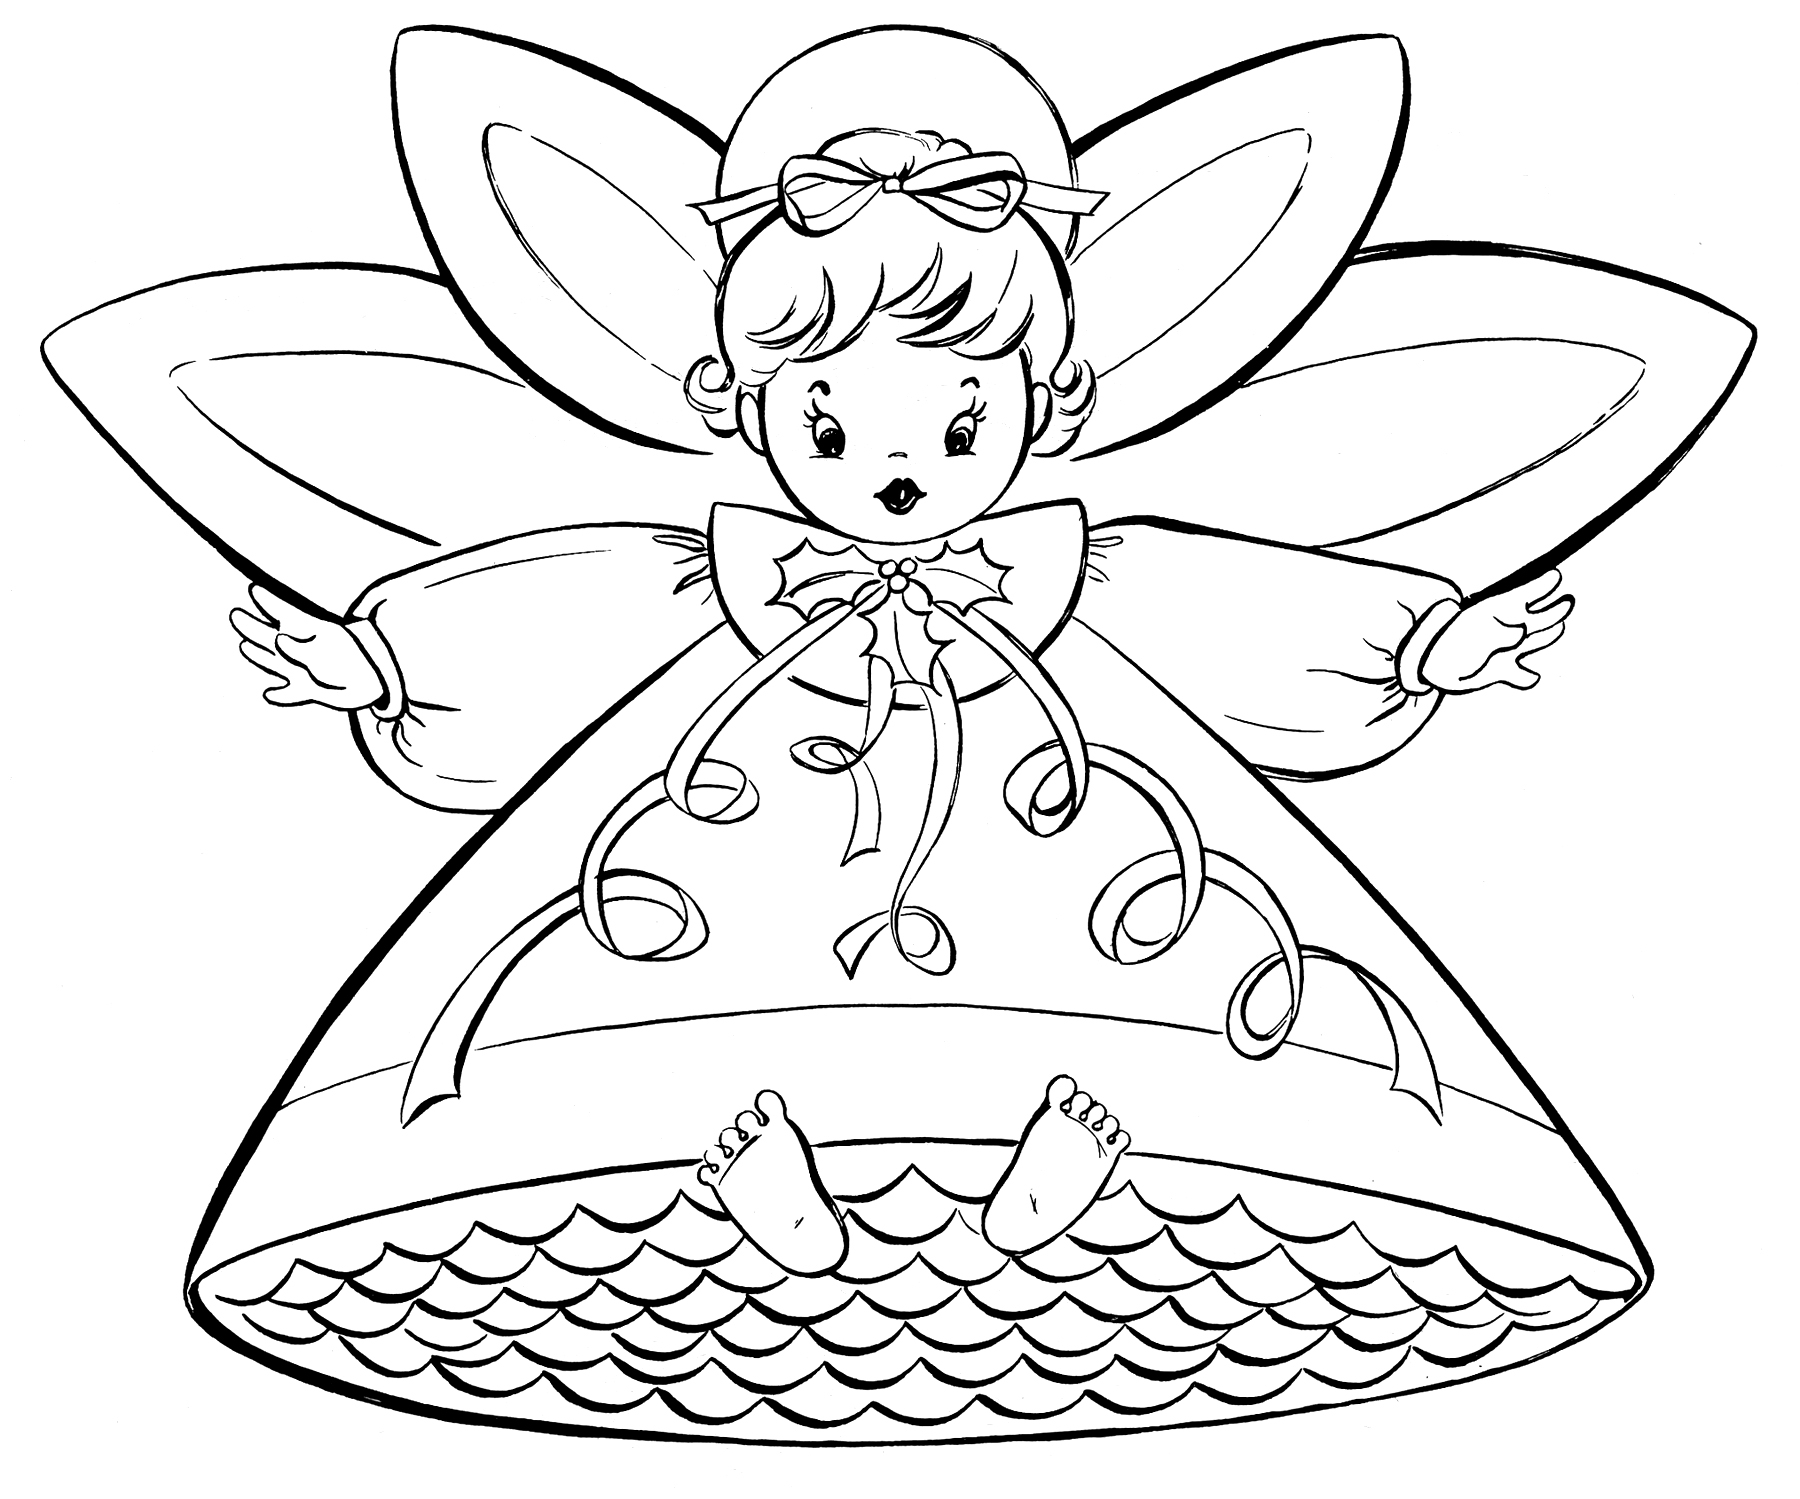 Free christmas coloring pages retro angels the for Christmas printables coloring pages